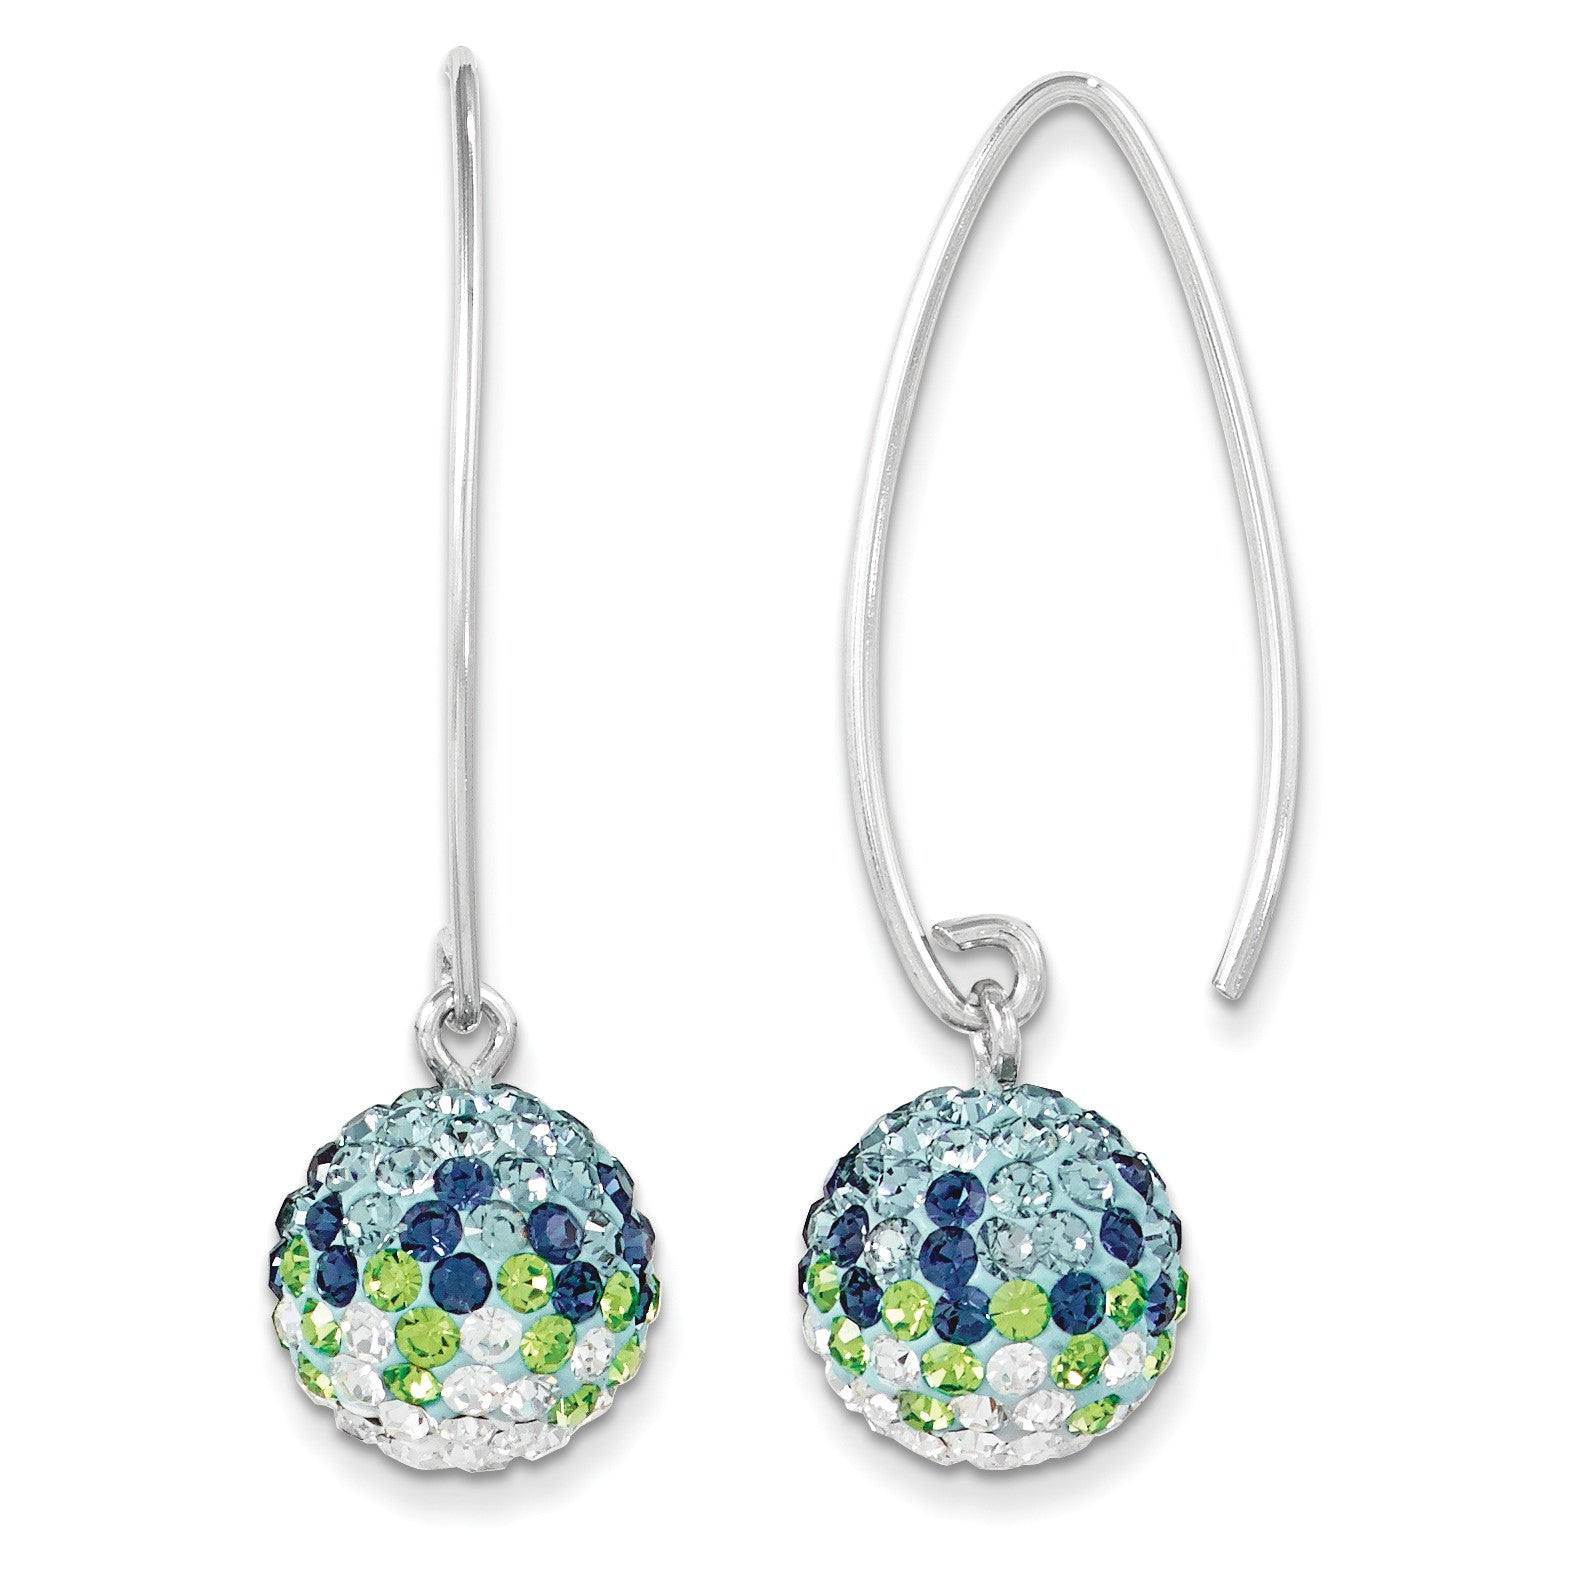 Sterling Silver Swarovski Elements Seattle Spirit Ball Earrings CE0174-028 - shirin-diamonds